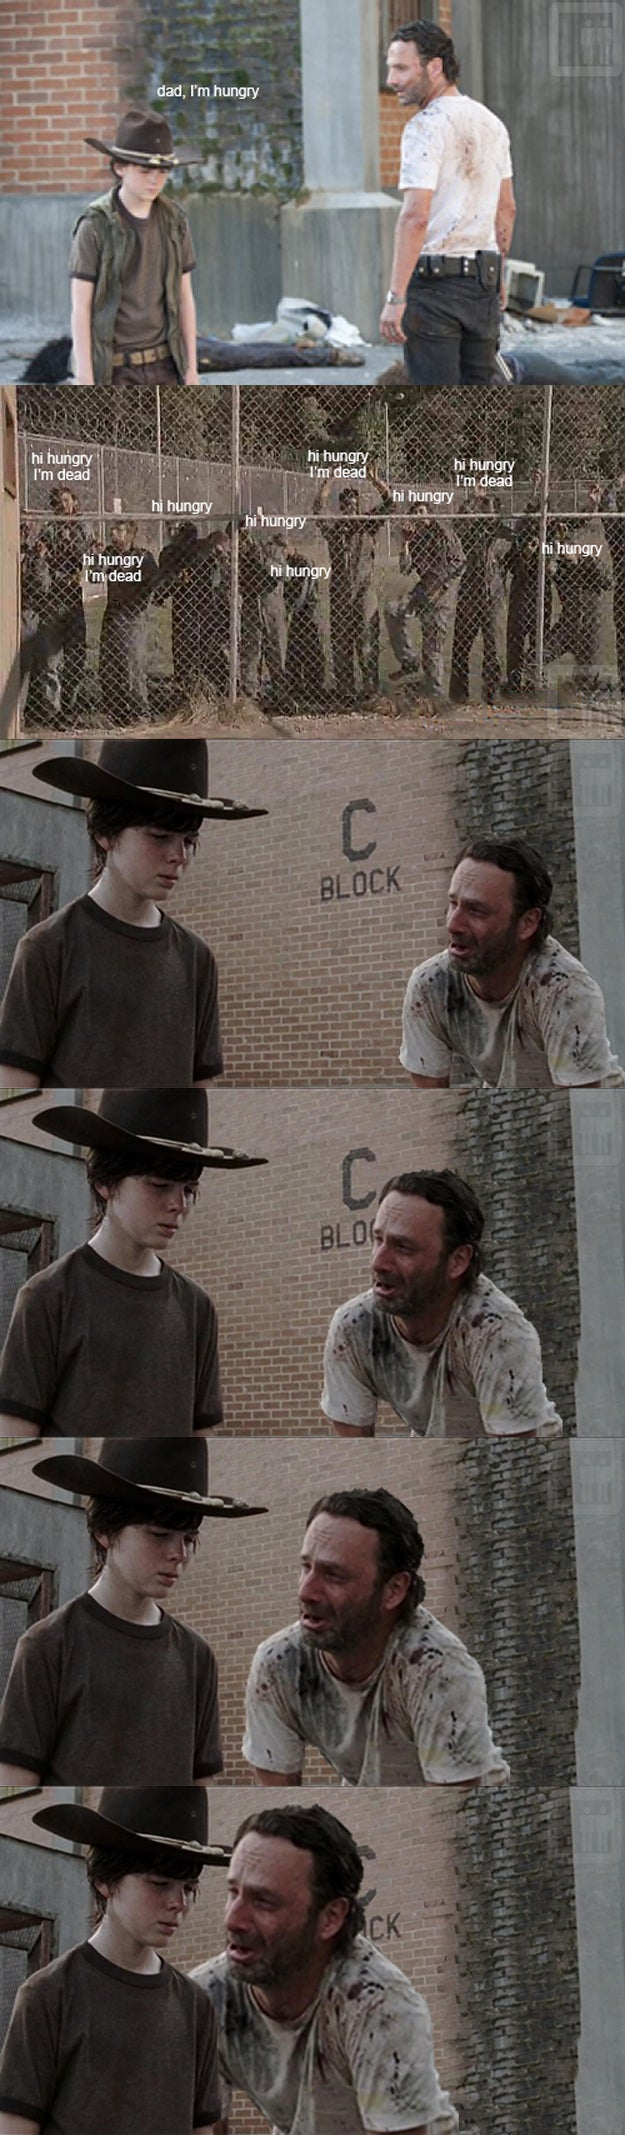 Rick Grimes tells Dad Jokes at the Worst Time...